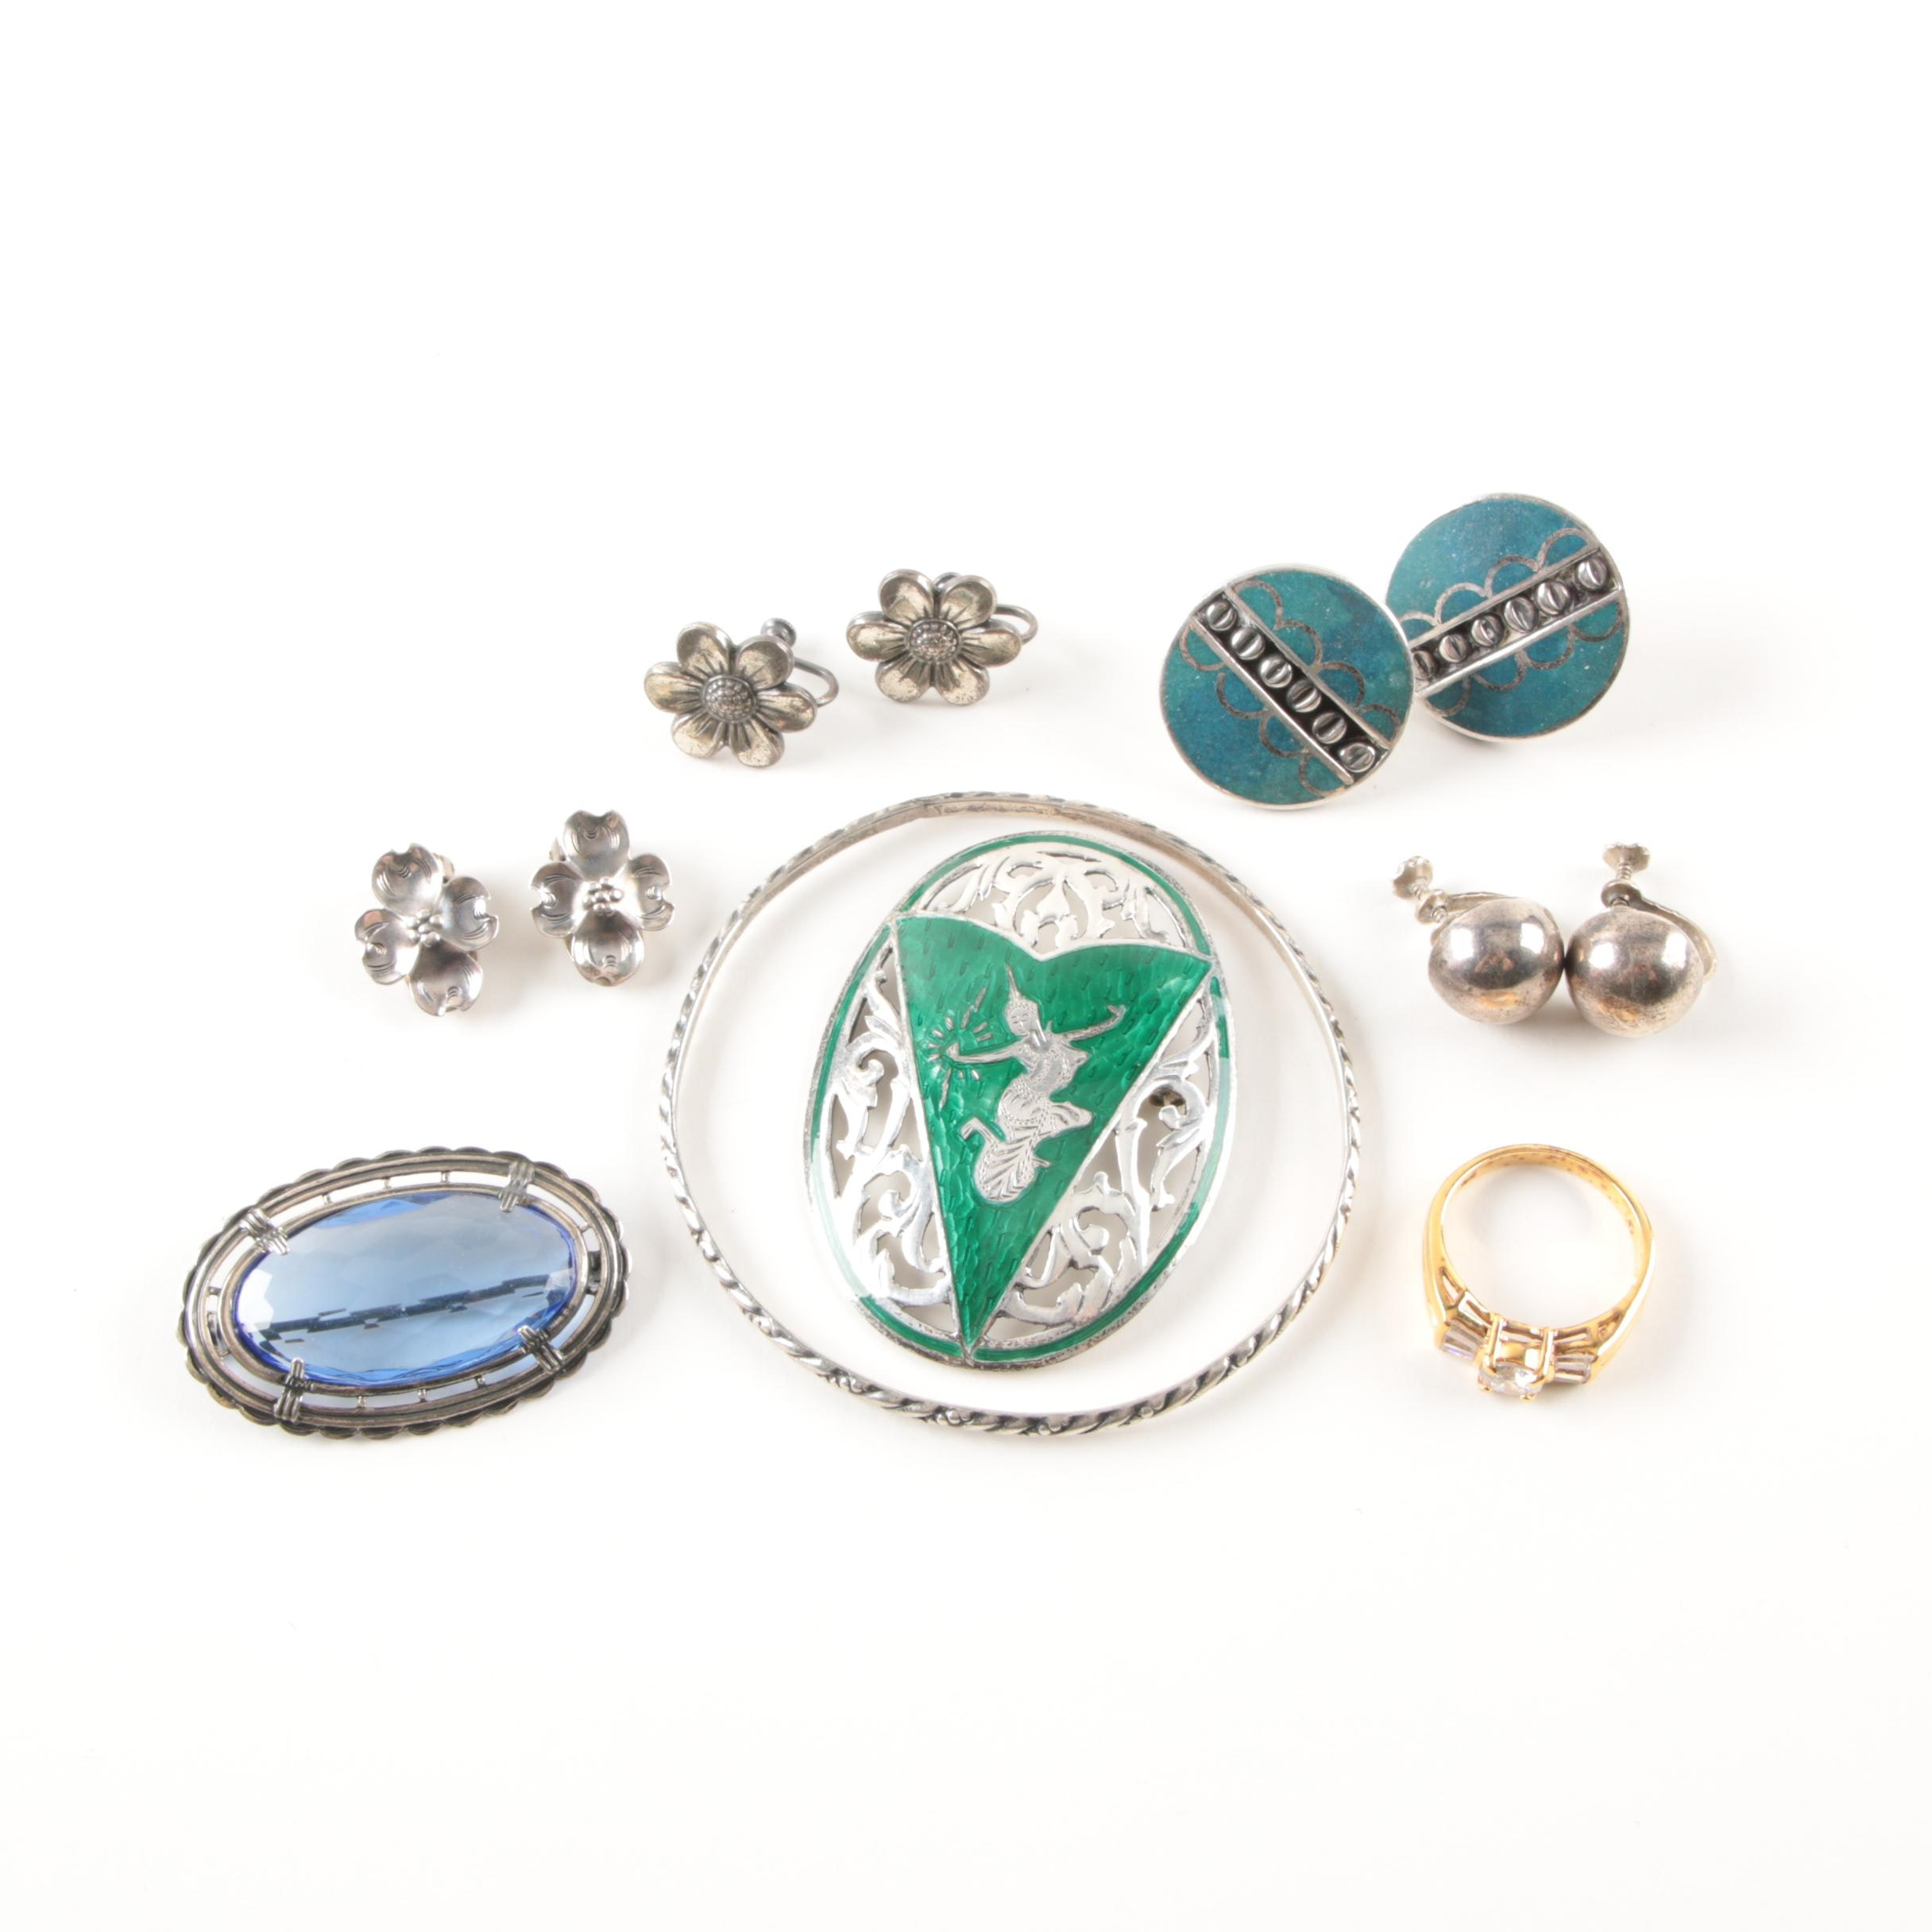 Sterling Silver Jewelry Selection Featuring Siam Green Enamel Brooch